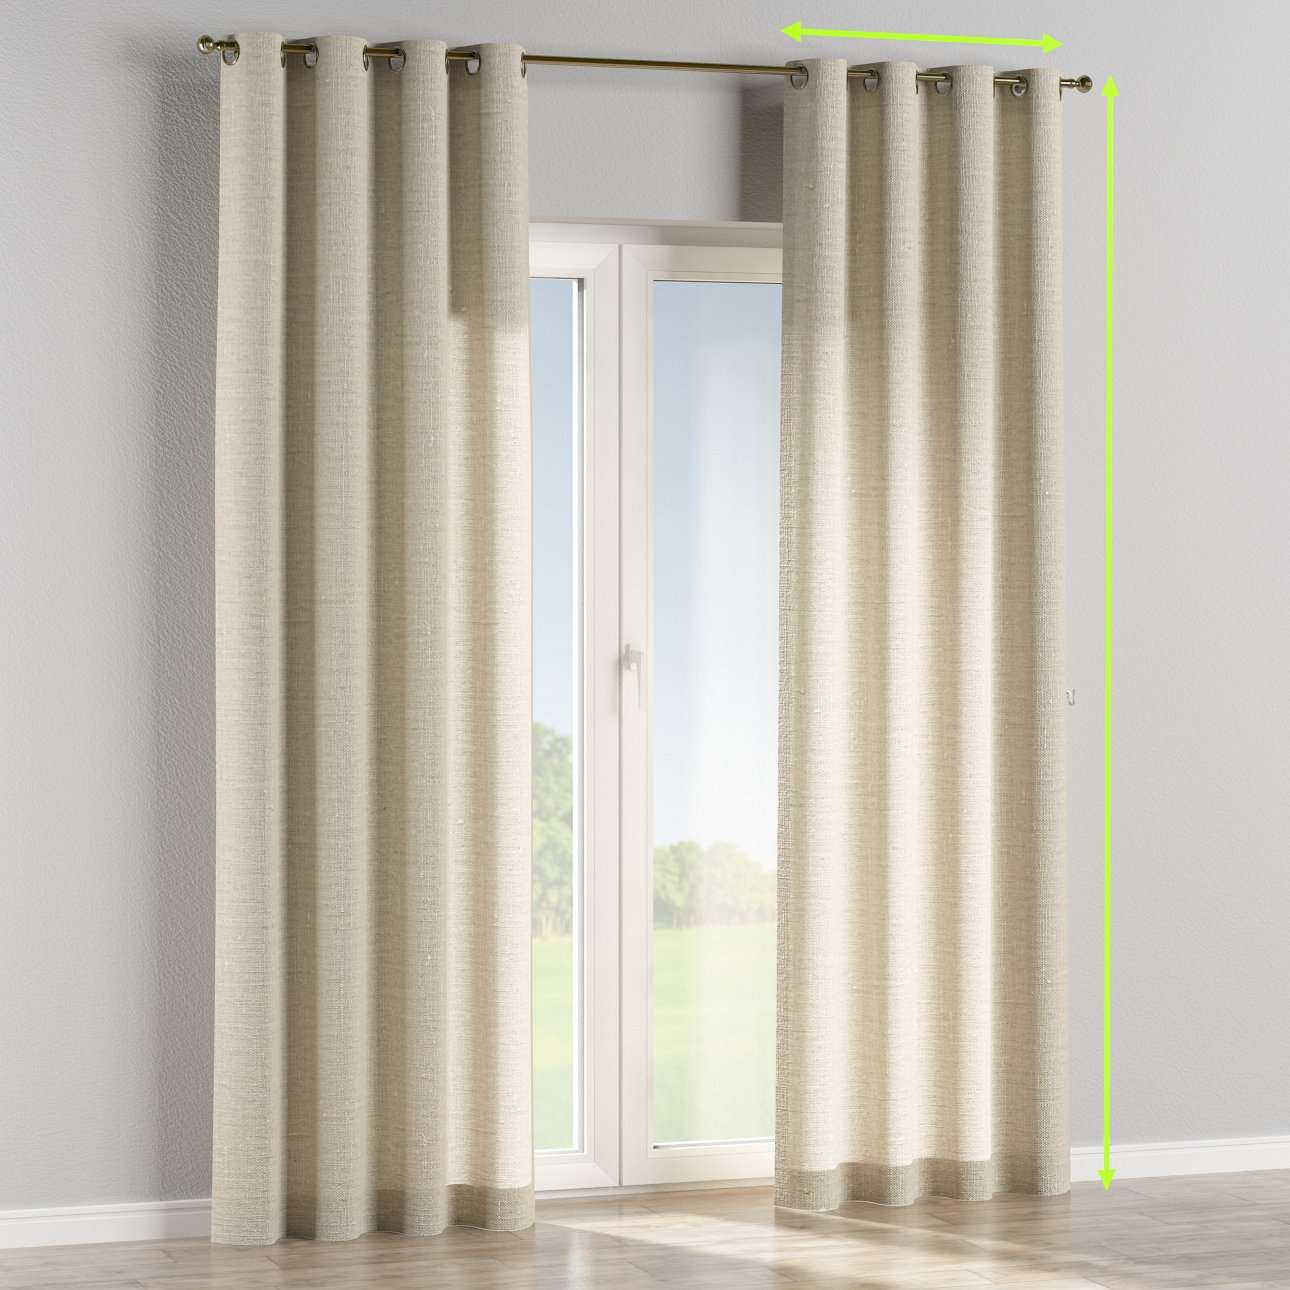 Eyelet curtain in collection Linen, fabric: 392-05